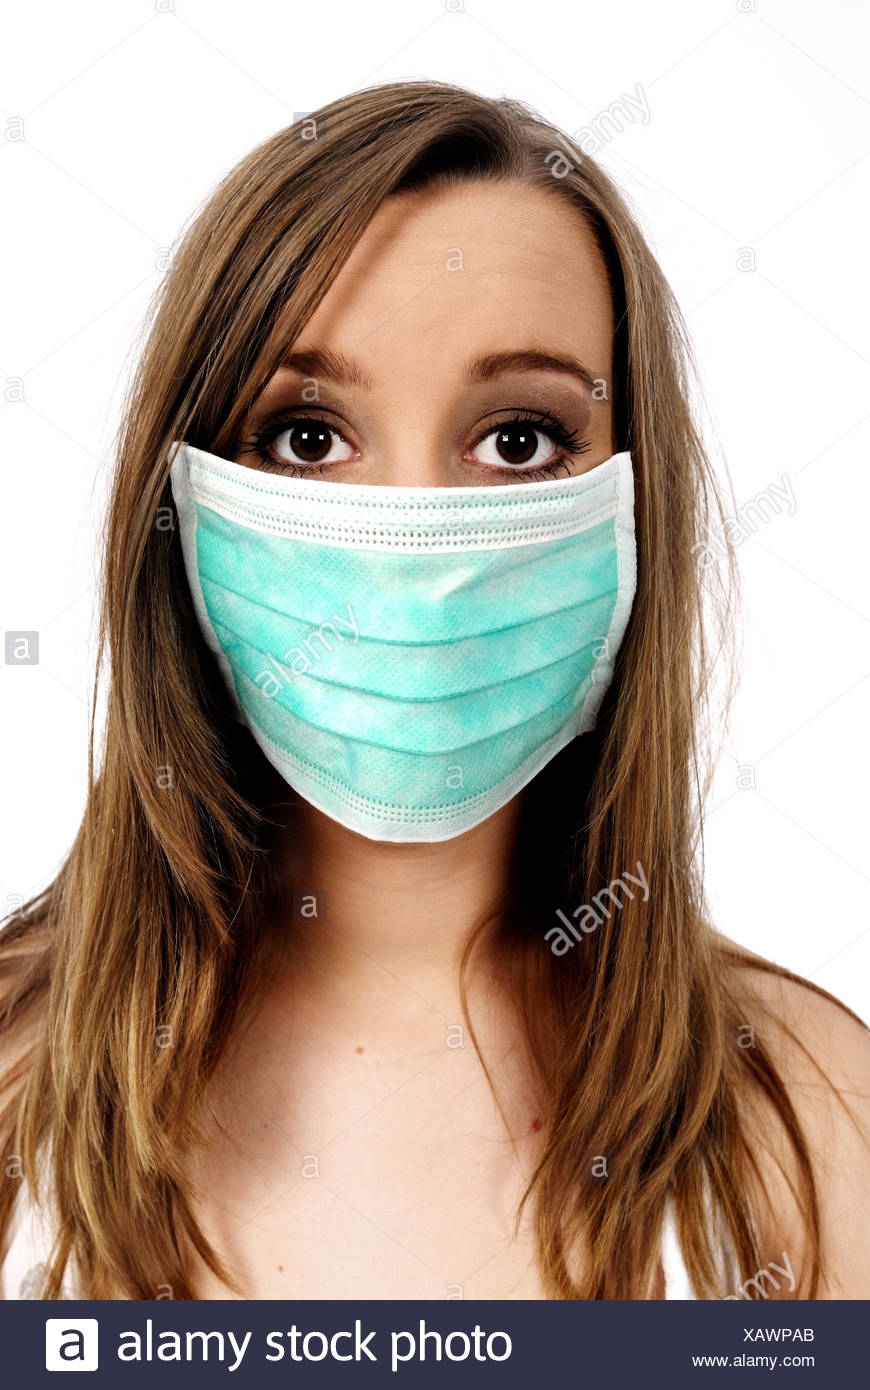 woman with green gumshield is afraid of influenza - Stock Image